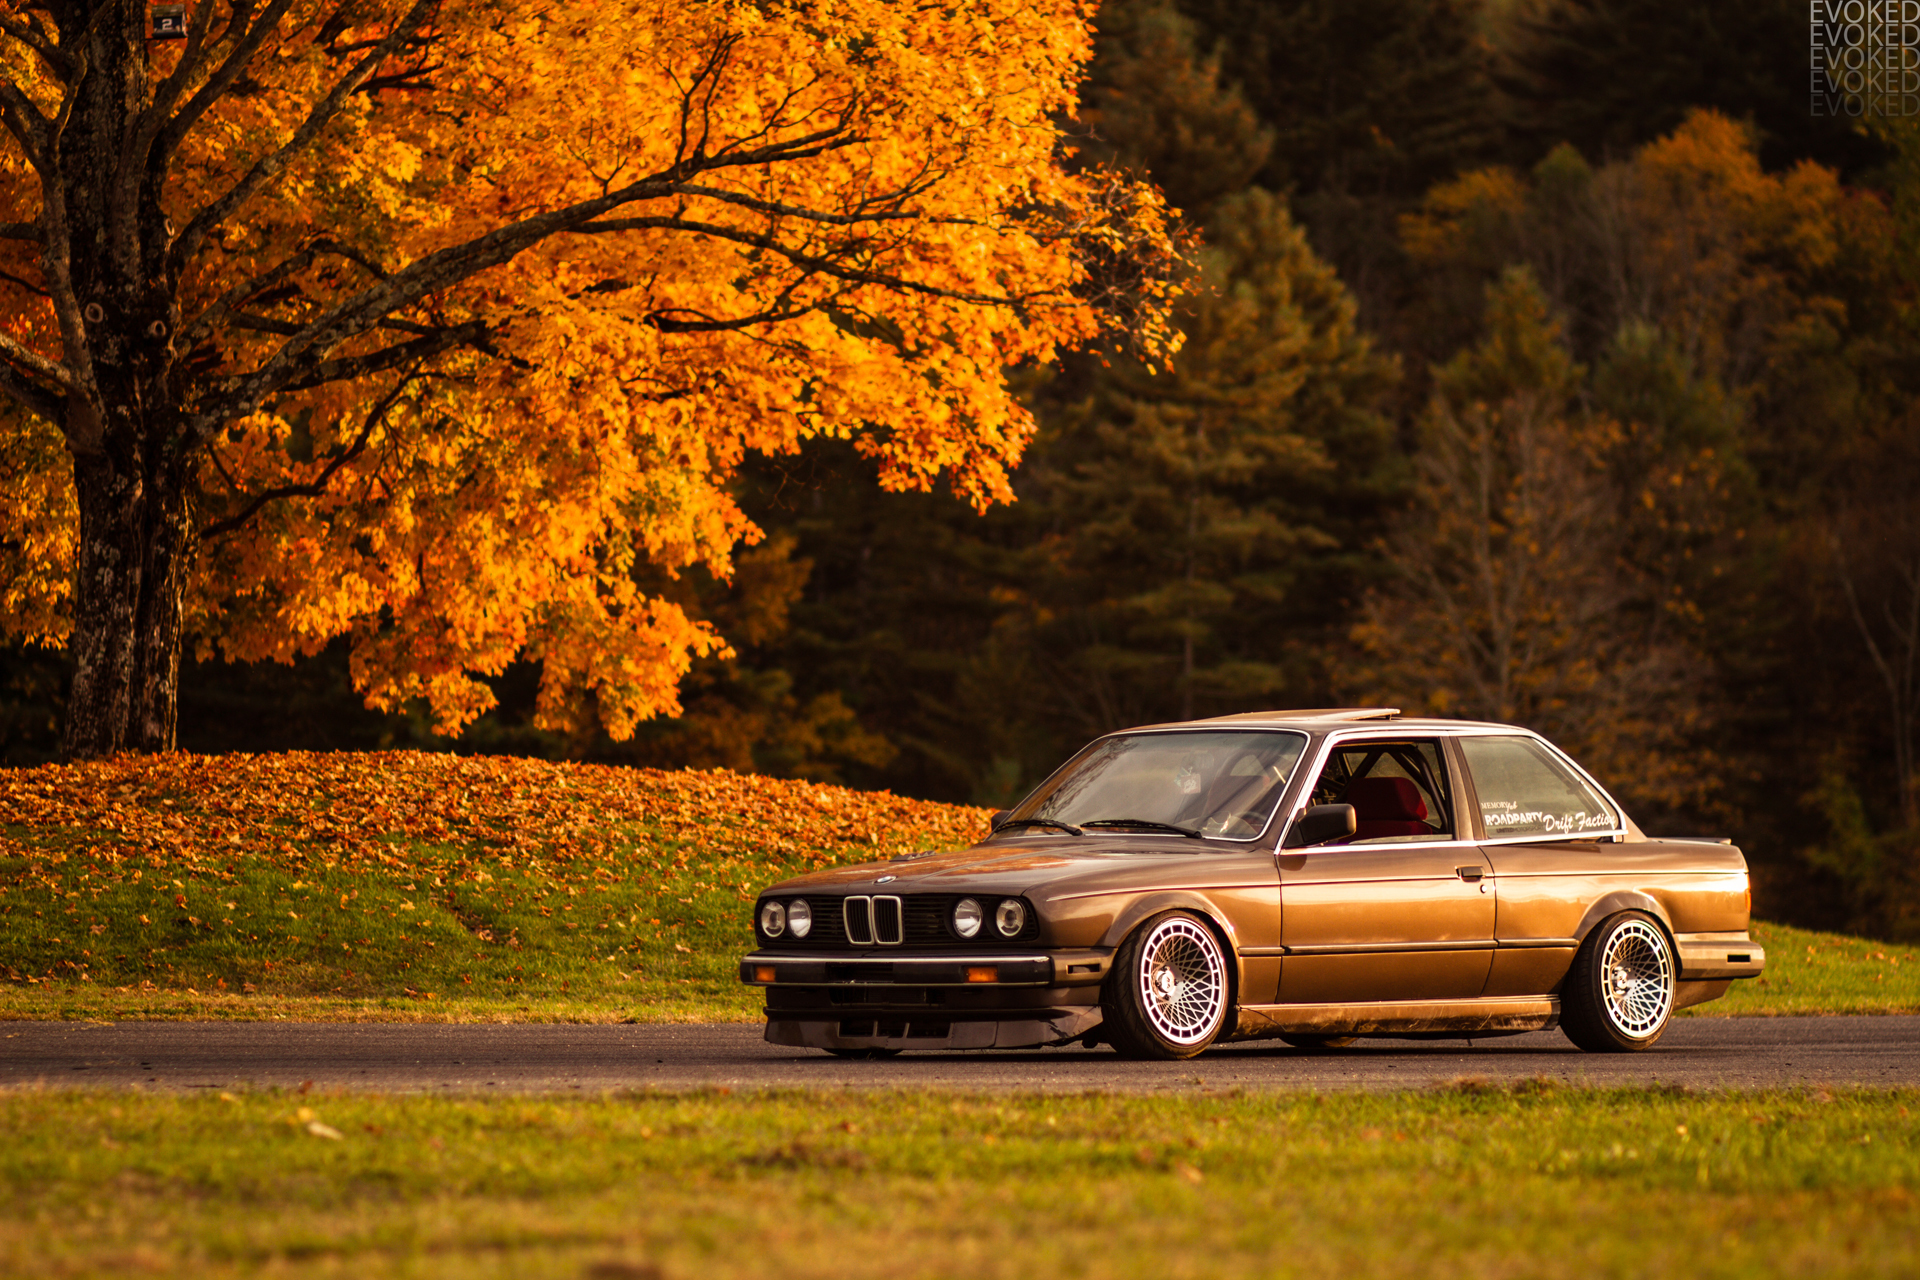 Bmw e30 Wallpapers Archives - Page 2 of 2 - HD Desktop Wallpapers | 4k HD